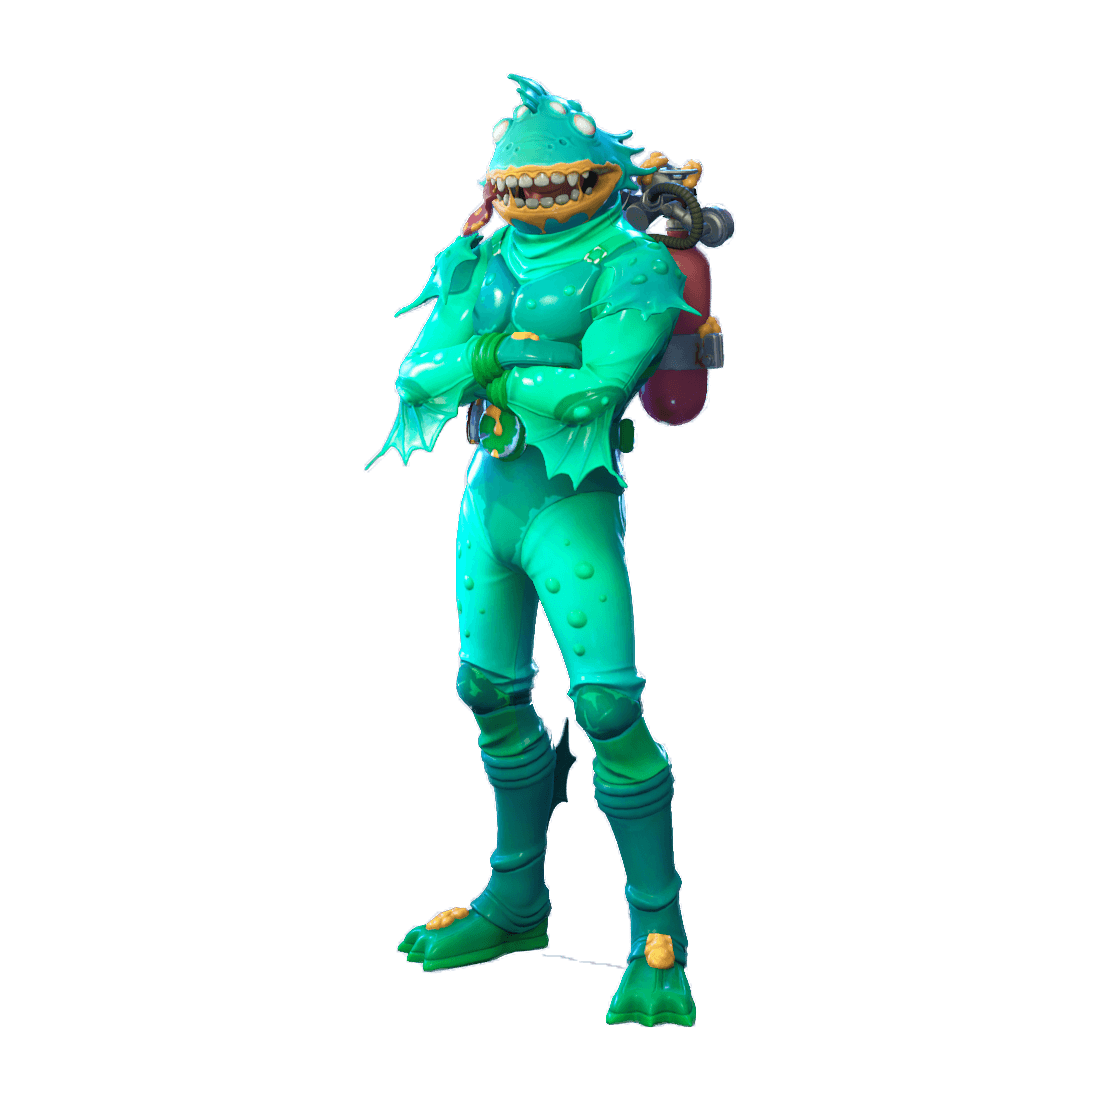 Fortnite Moisty Merman PNG Image - PurePNG | Free transparent CC0 ...